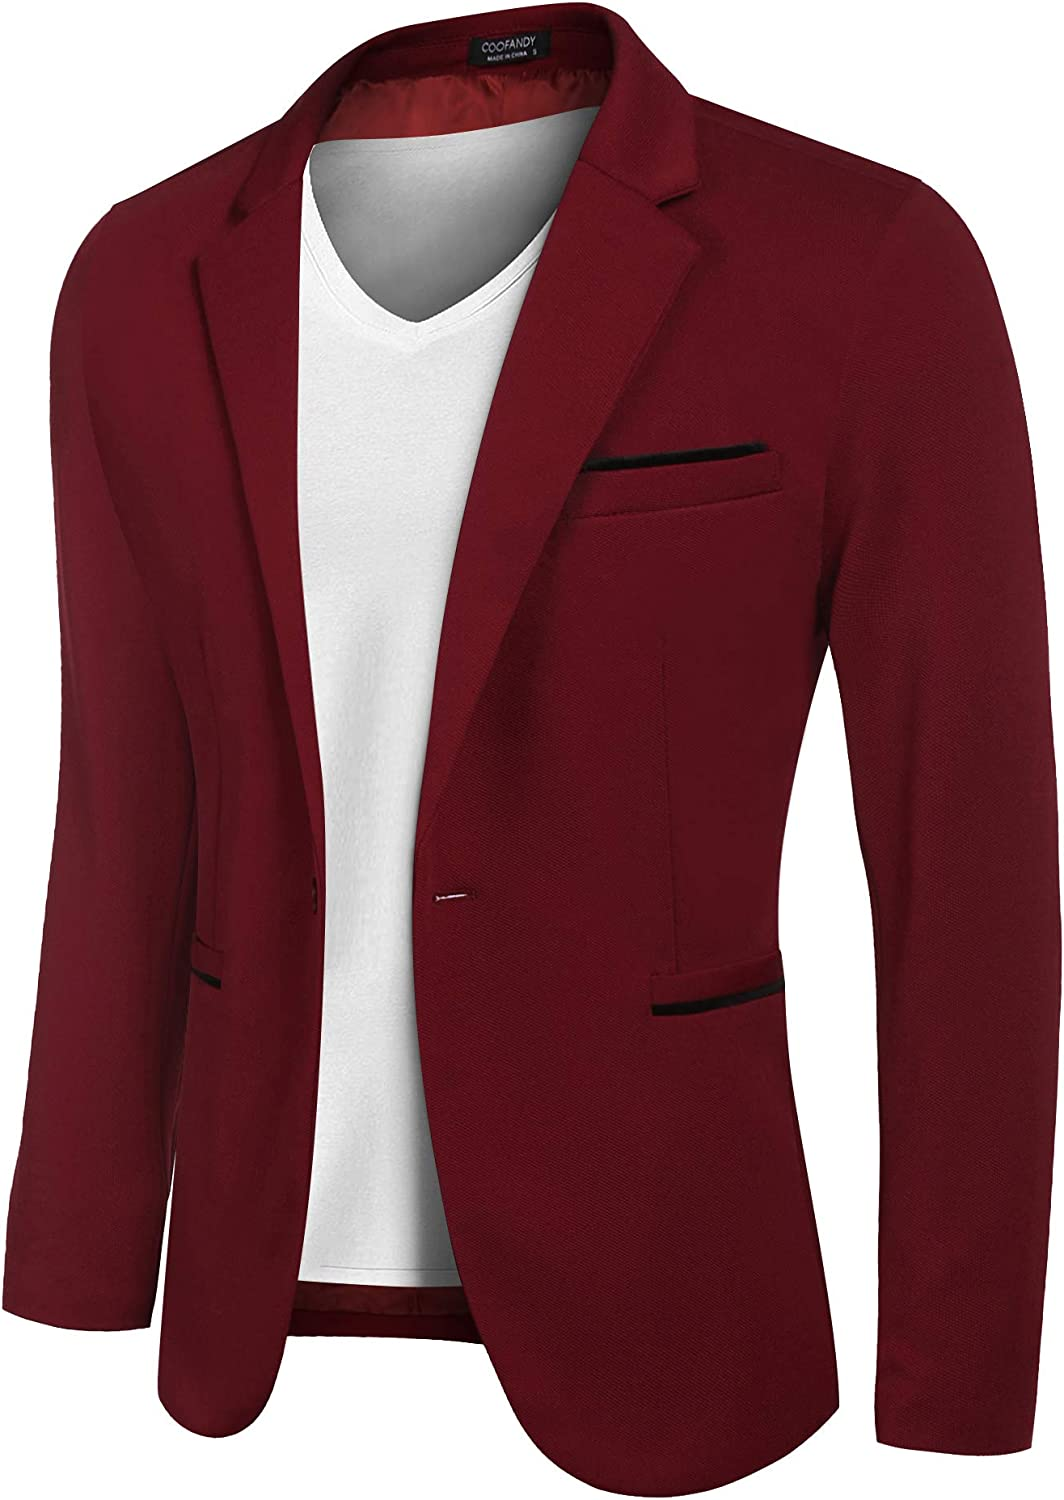 COOFANDY Men's Casual Suit Blazer Sports Lightweight Jackets Max 81% OFF excellence Coa